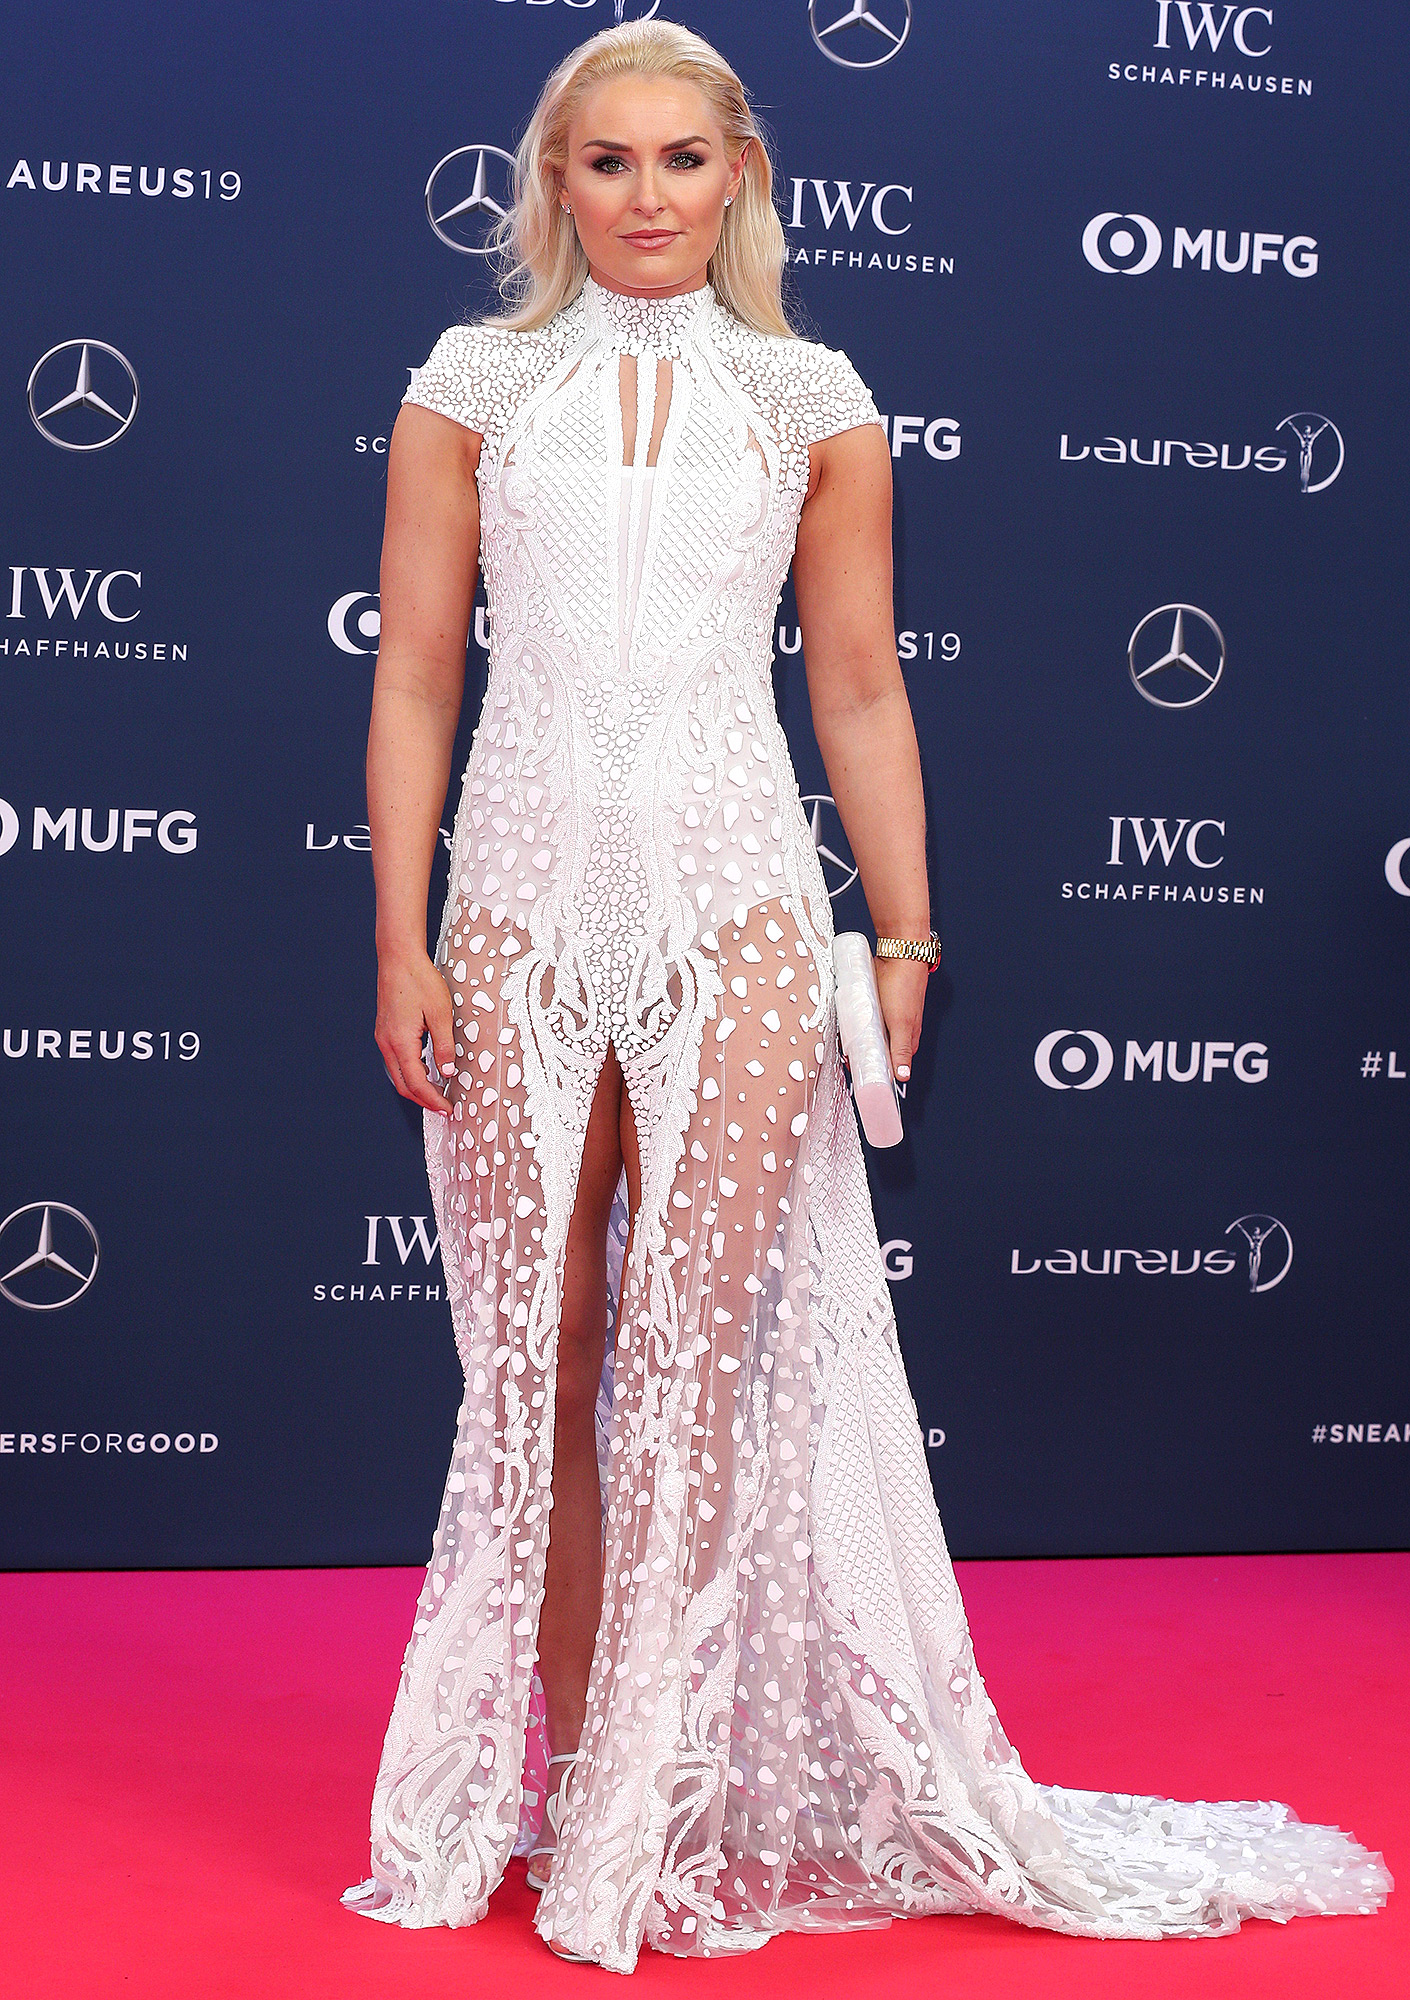 Laureus World Sports Awards 2019